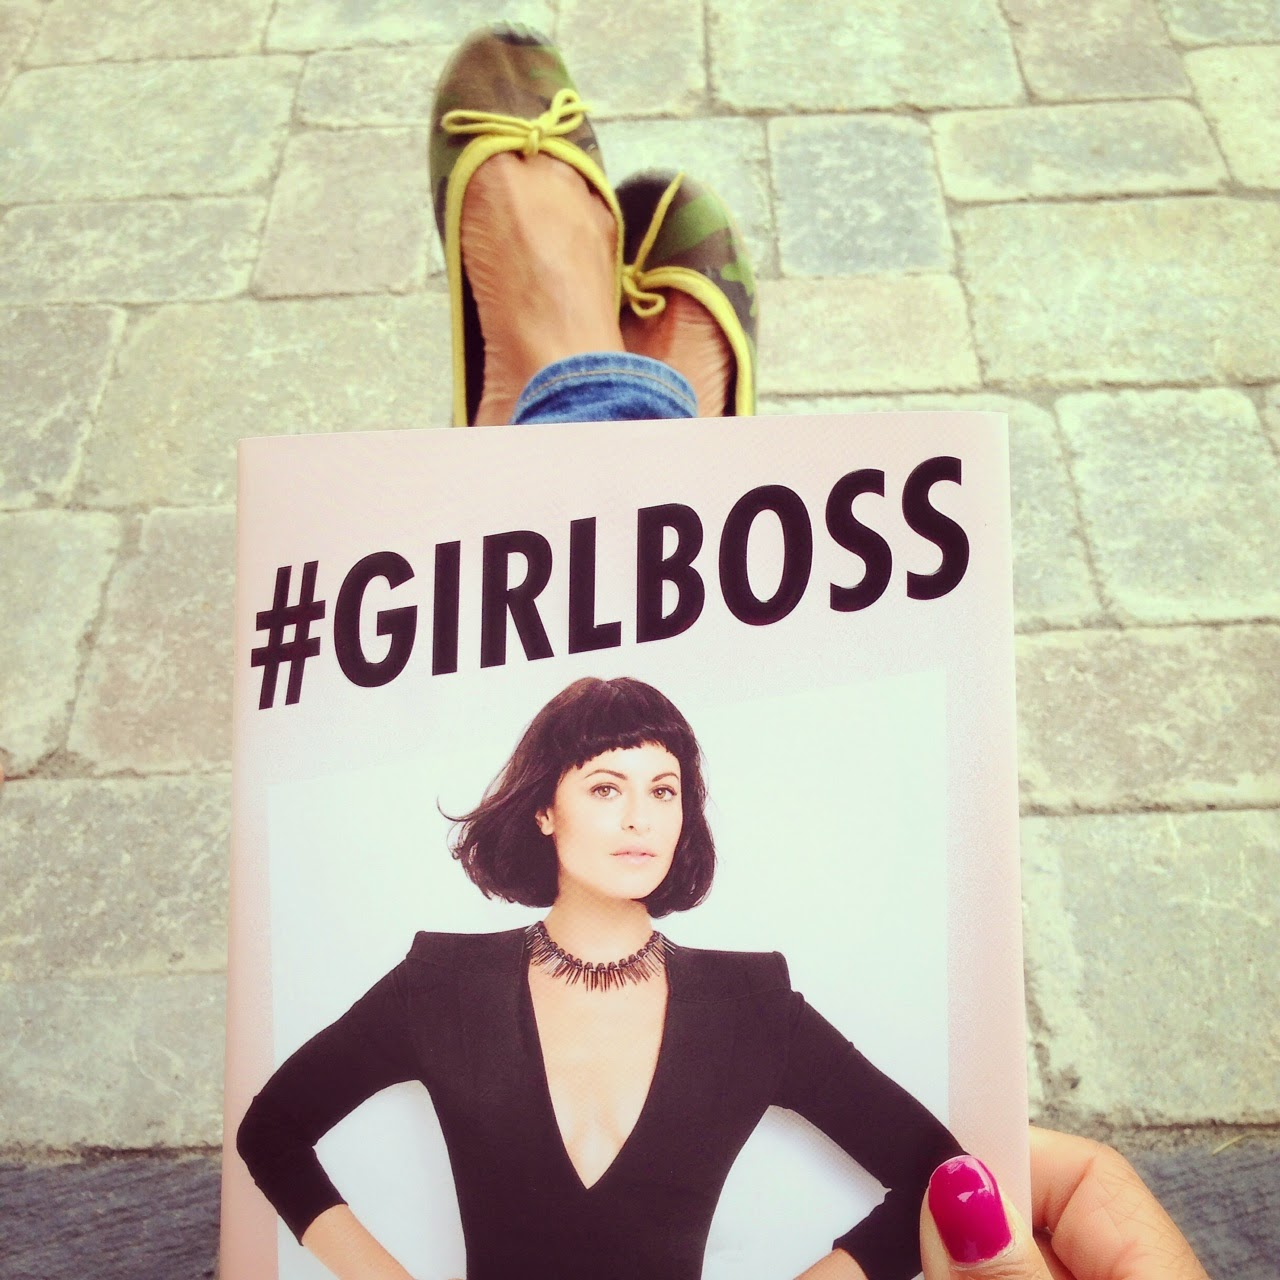 5ad83439b43 I just recently finished reading this bestseller book called  Girlboss by  Sophia Amoruso